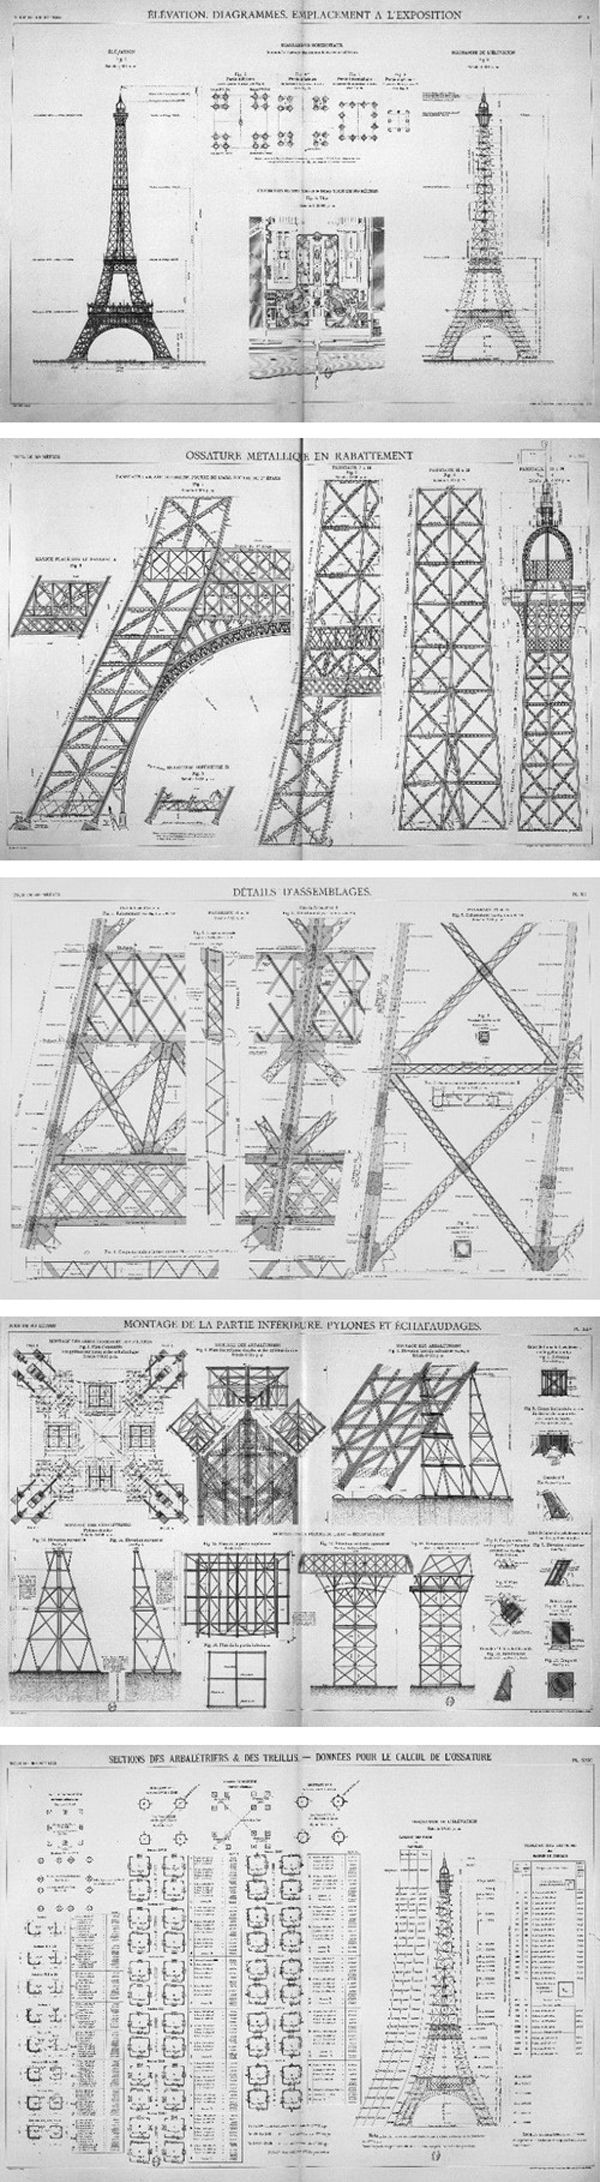 Blueprints for the Eiffel Tower